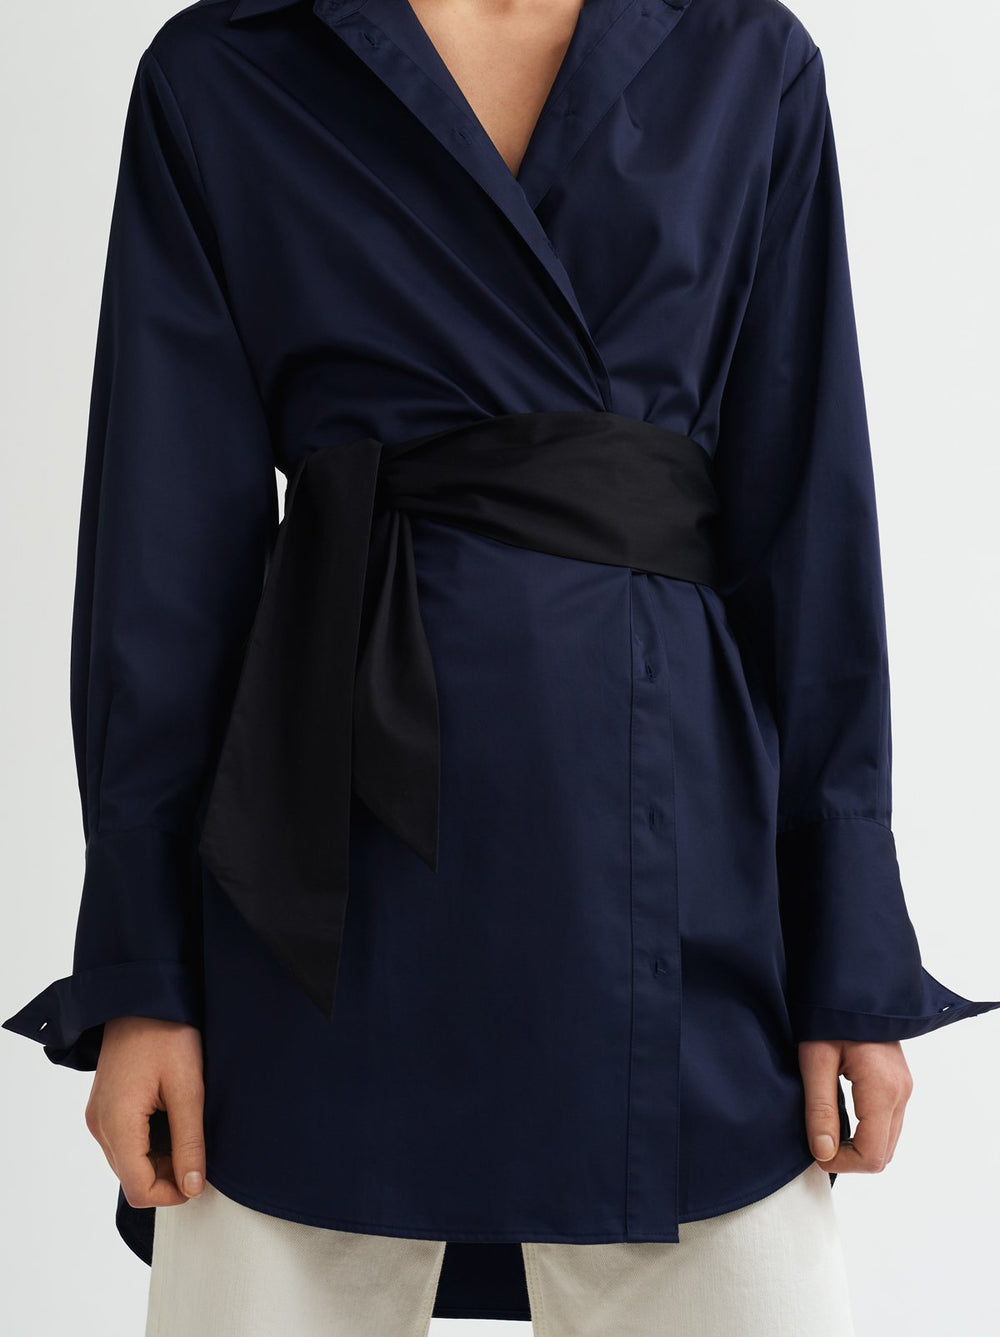 Joanna Sash Shirt Dress by KITRI Studio